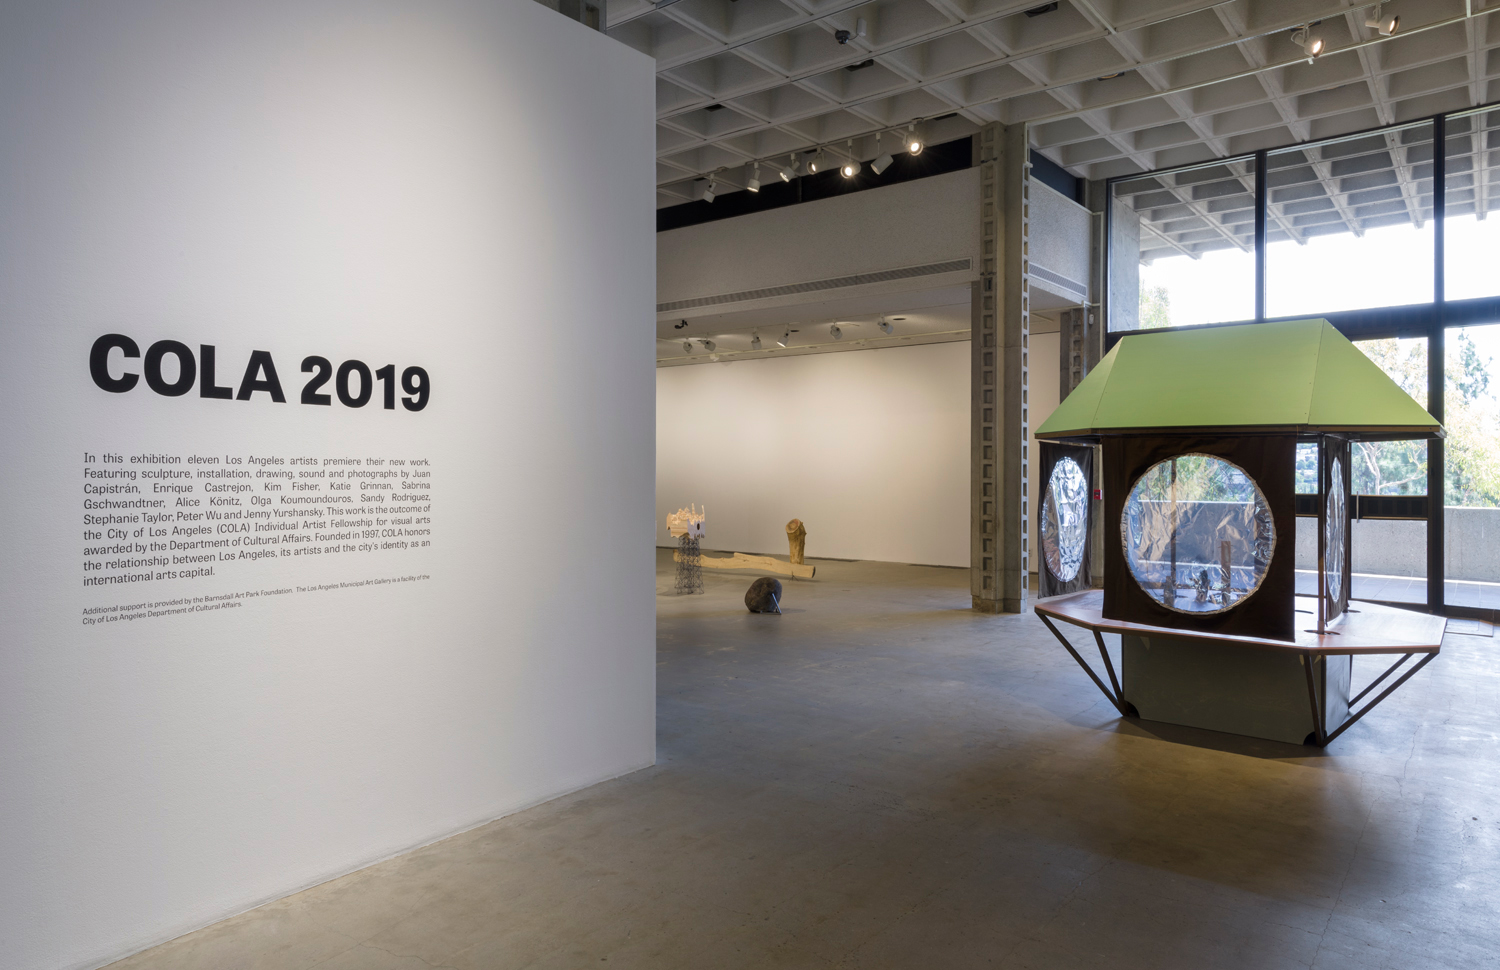 There is a large artwork installation by the artist Alice Könitz of a survivalist structure. This structure includes an angular light green roof and three different hanging fabric panels with circular reflective material in the middle of each panel. These three panels are on three of the sides of the four-sided structure. There is also a flat surface for seating and angular bars to support this surface. To the left of this structure is another artwork installation by the artist Katie Grinnan of a tree plank placed on the floor and a large rock placed on the floor.